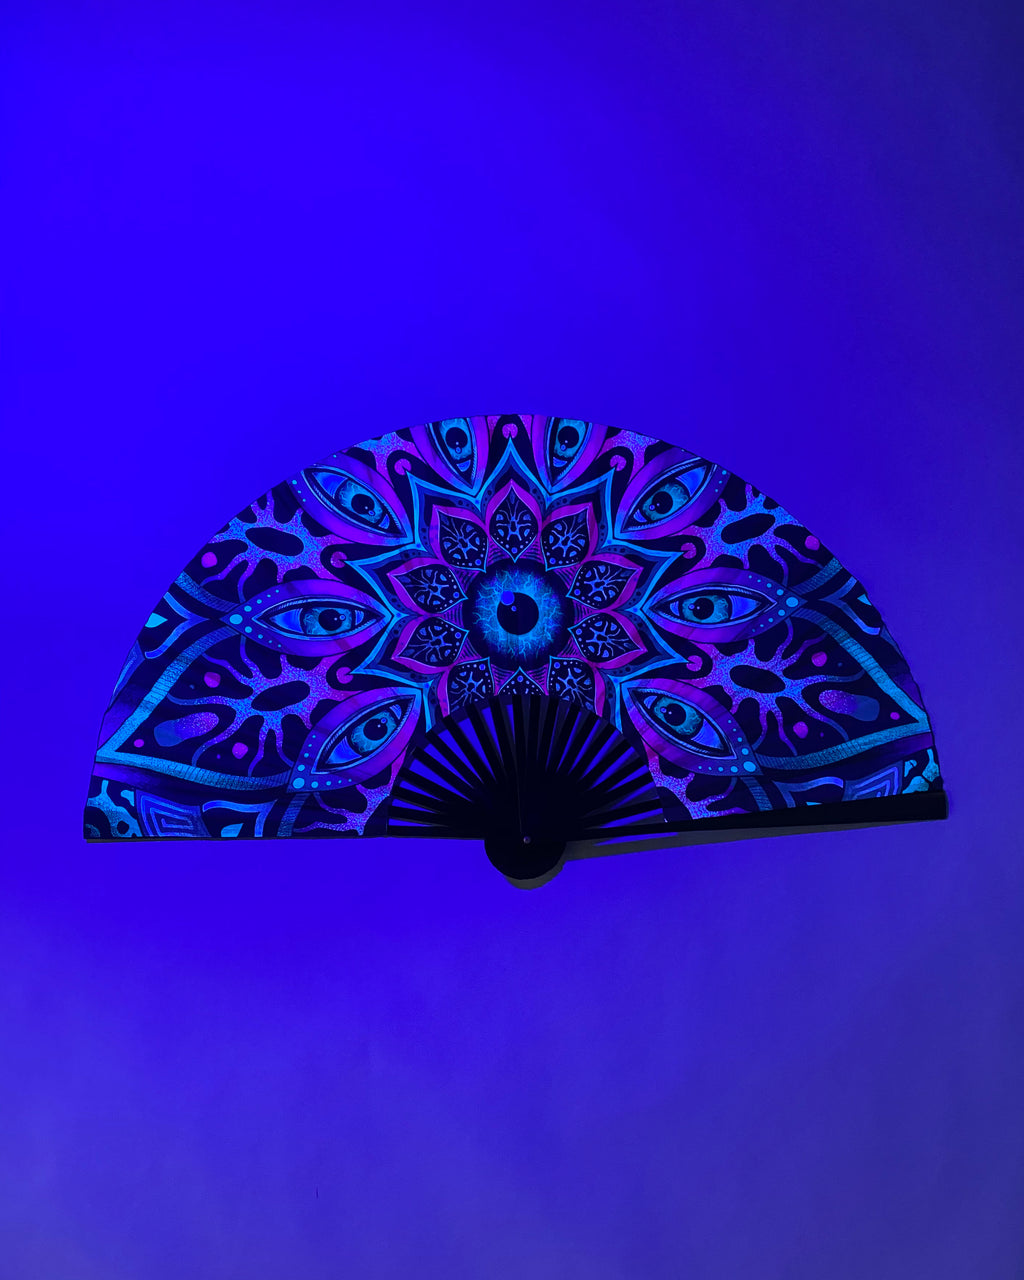 LARGE Alien Mandala Fan